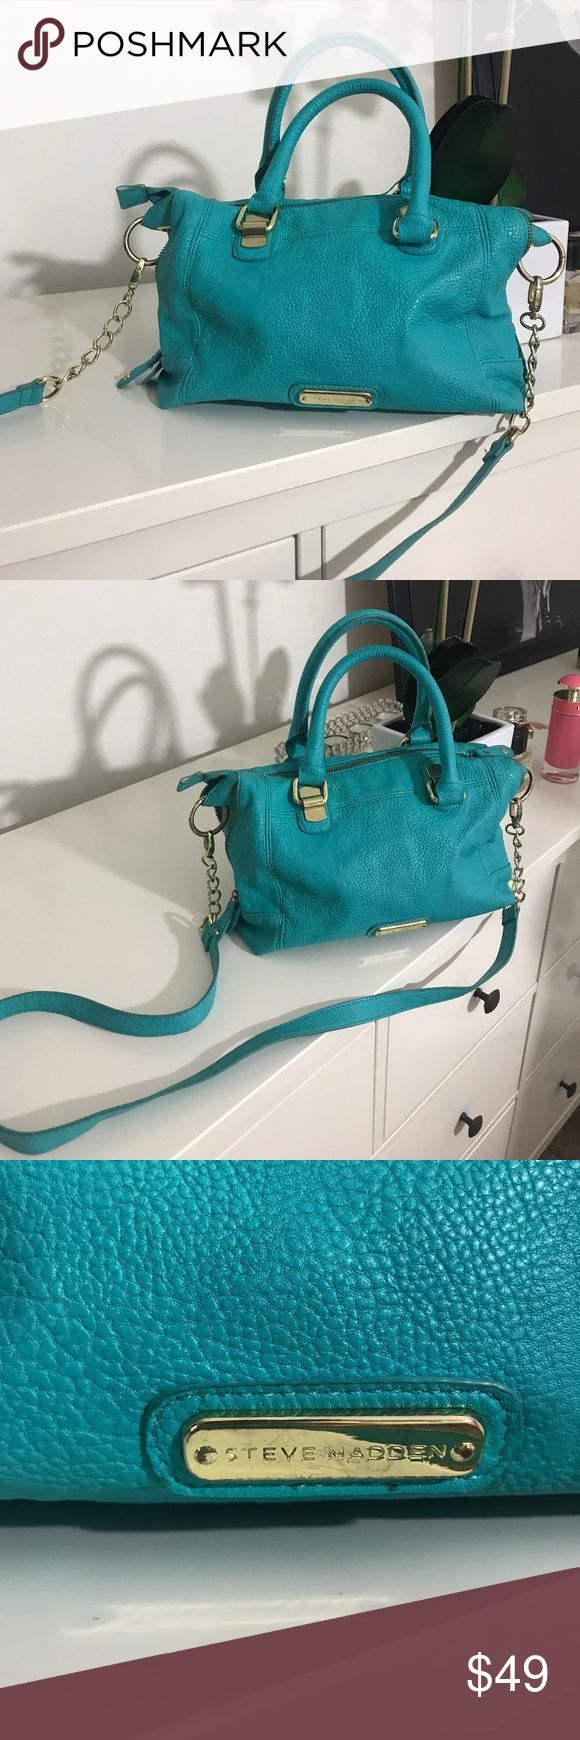 "Steve Madden Turquoise bag Approx 13""x9.5"". Turquoise. Normal wear and tear. 3 pockets inside. Crossbody removable strap. Handbag shoulder bag. 1007 Steve Madden Bags Crossbody Bags"